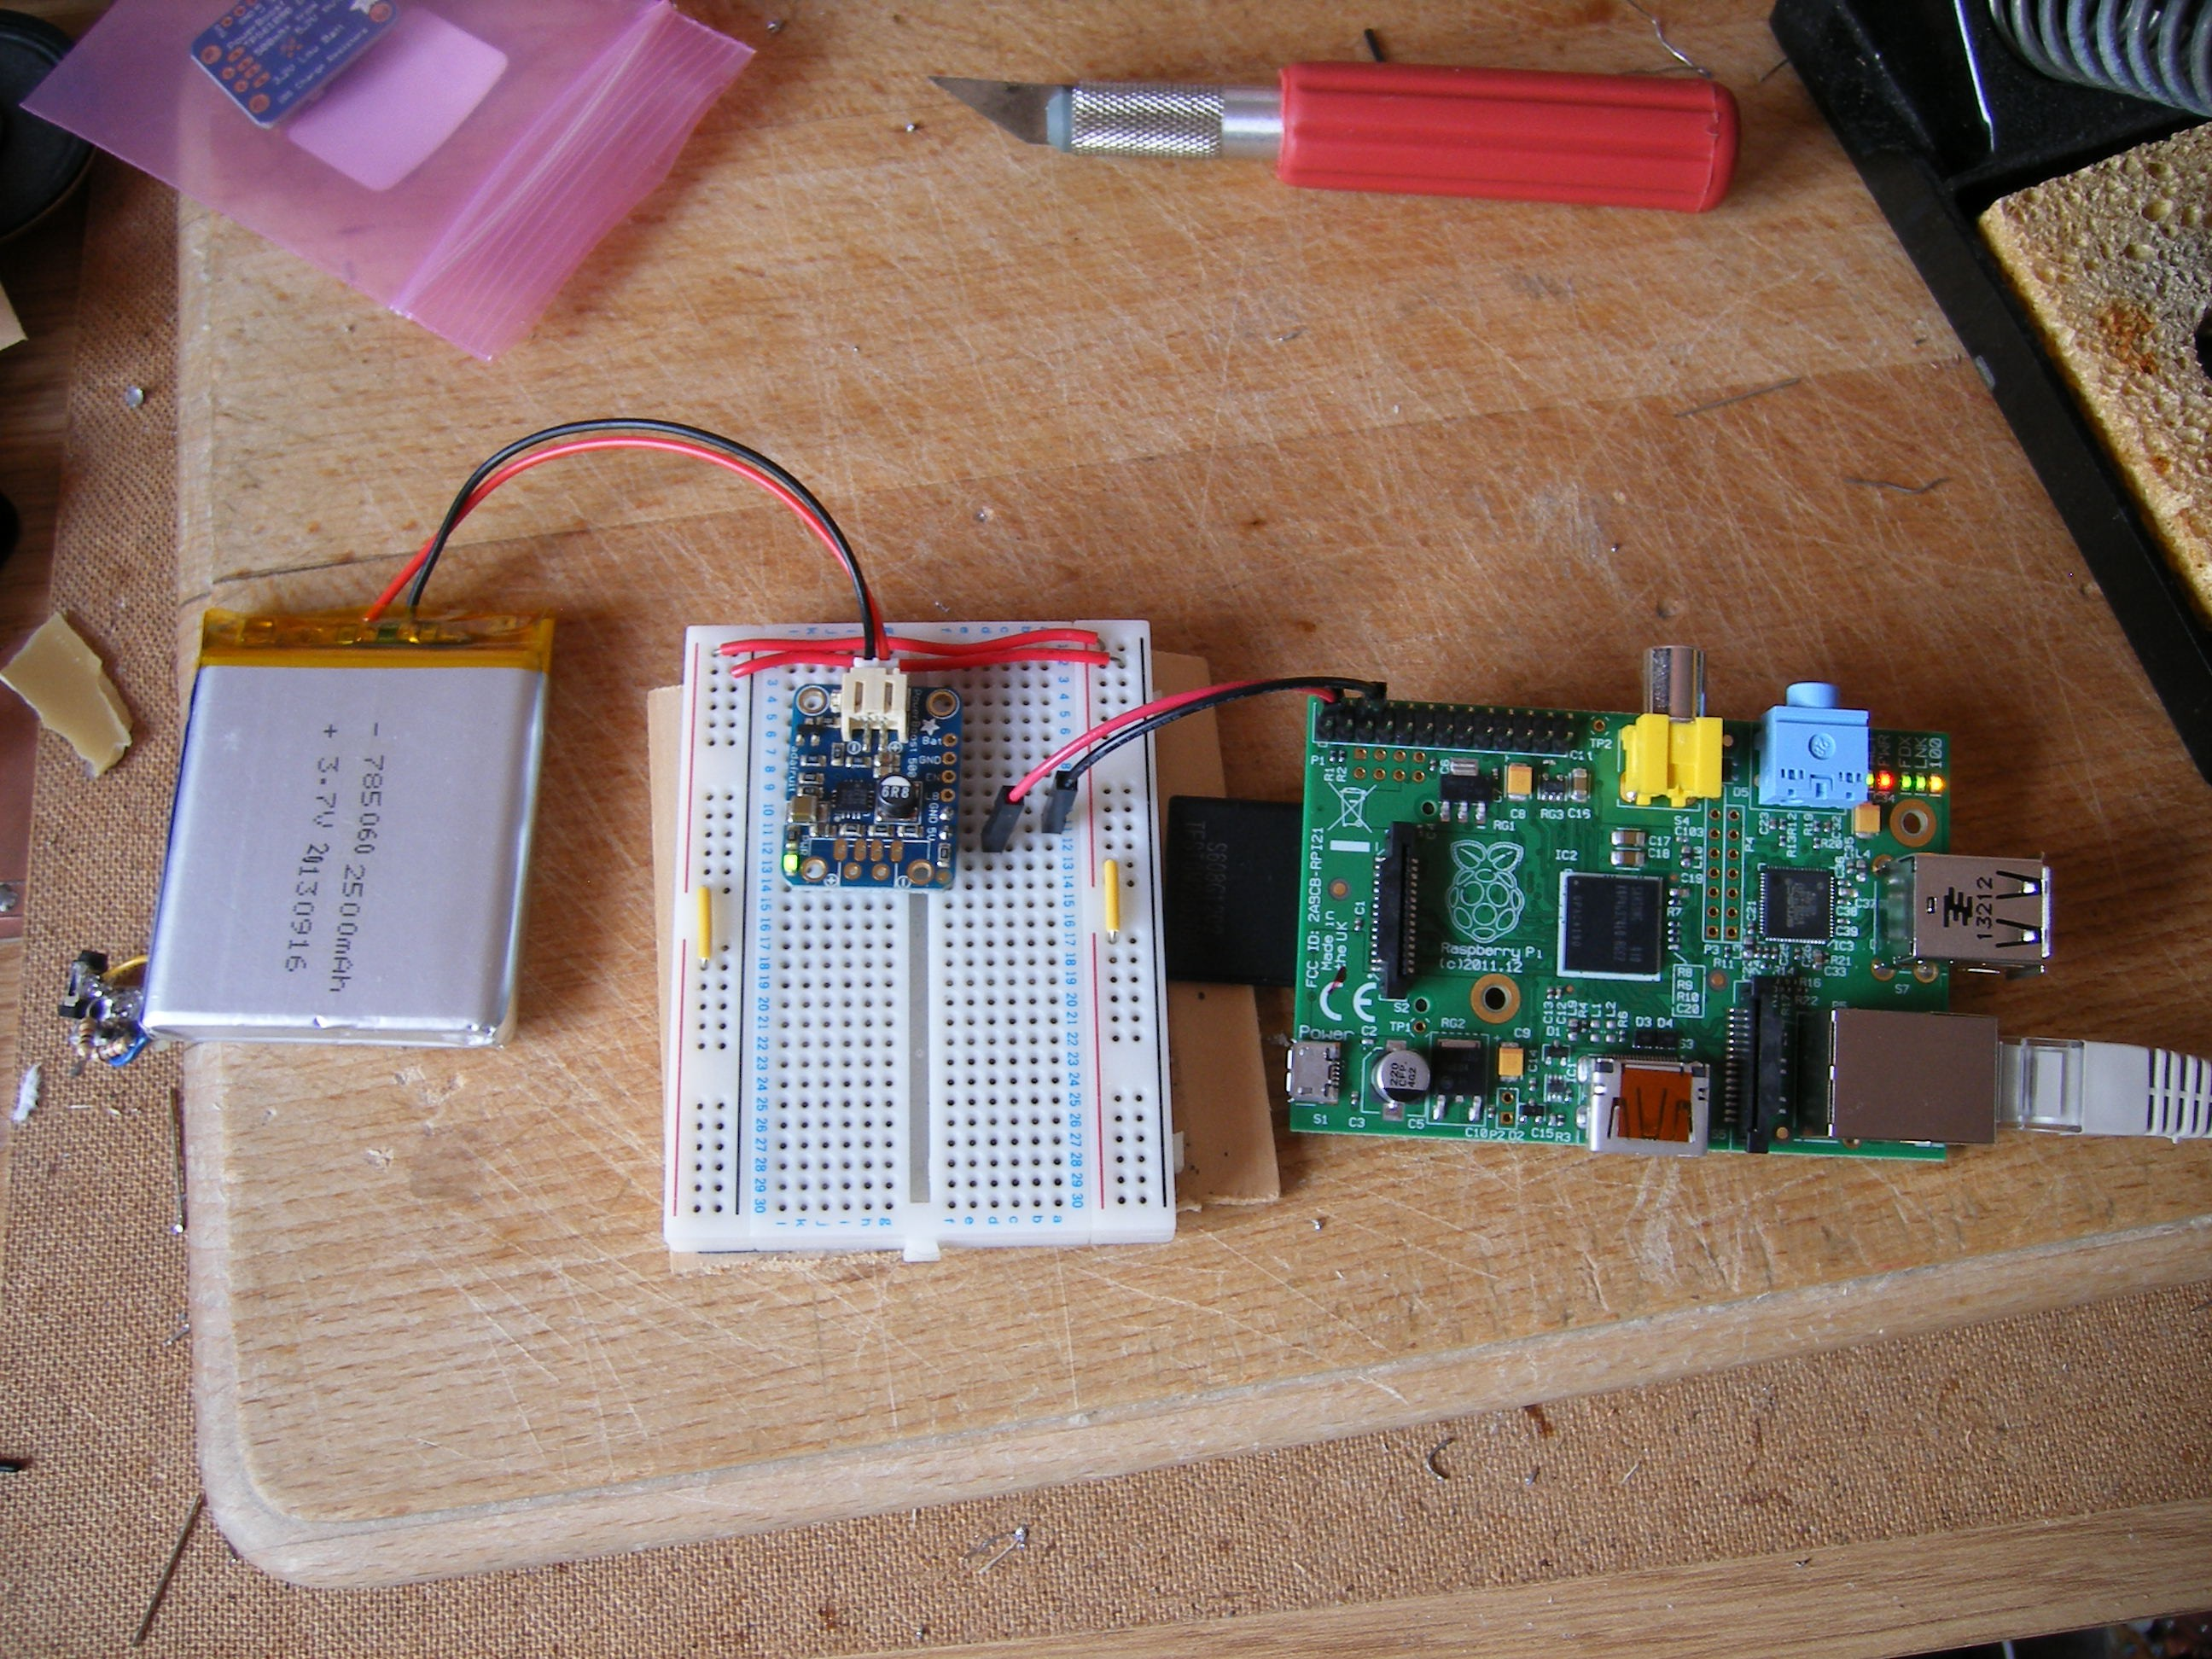 100 Google Glass Using Raspberry Pi The Breadboard Circuit Of Above Is Shown Below Setup With Battery On Left Boost Providing Power To Via Gpio